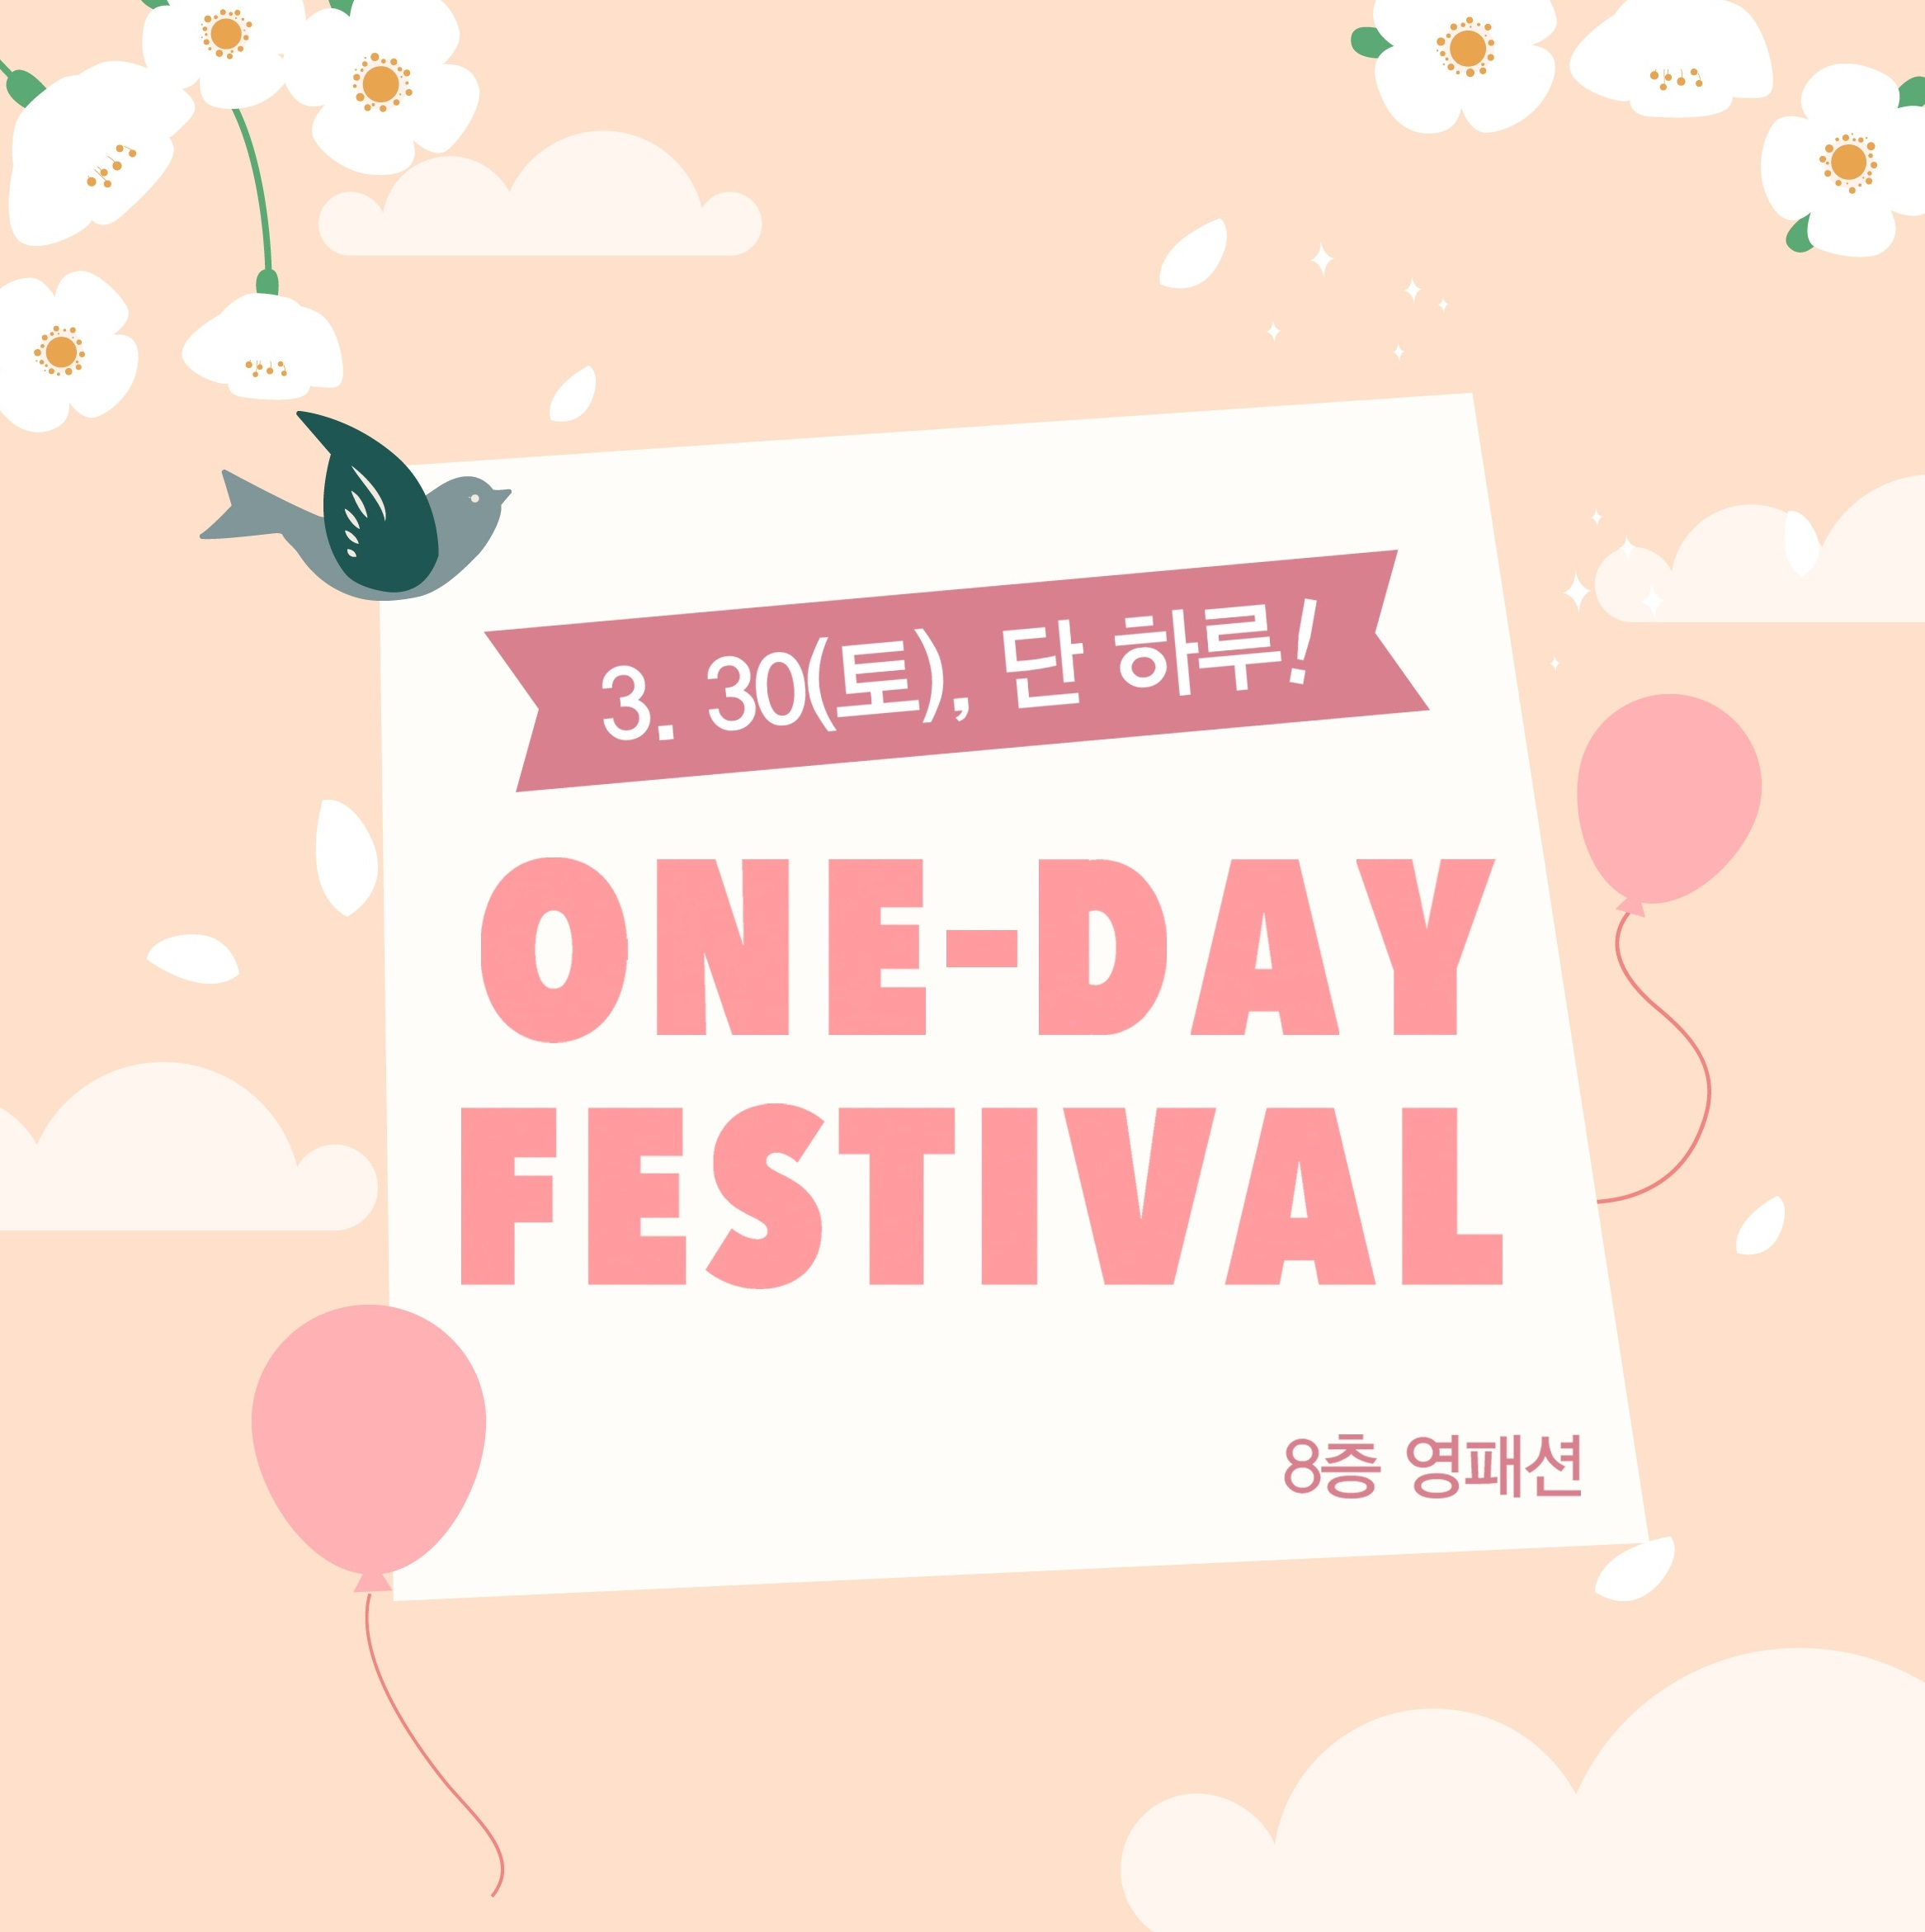 ONE-DAY FESTIVAL